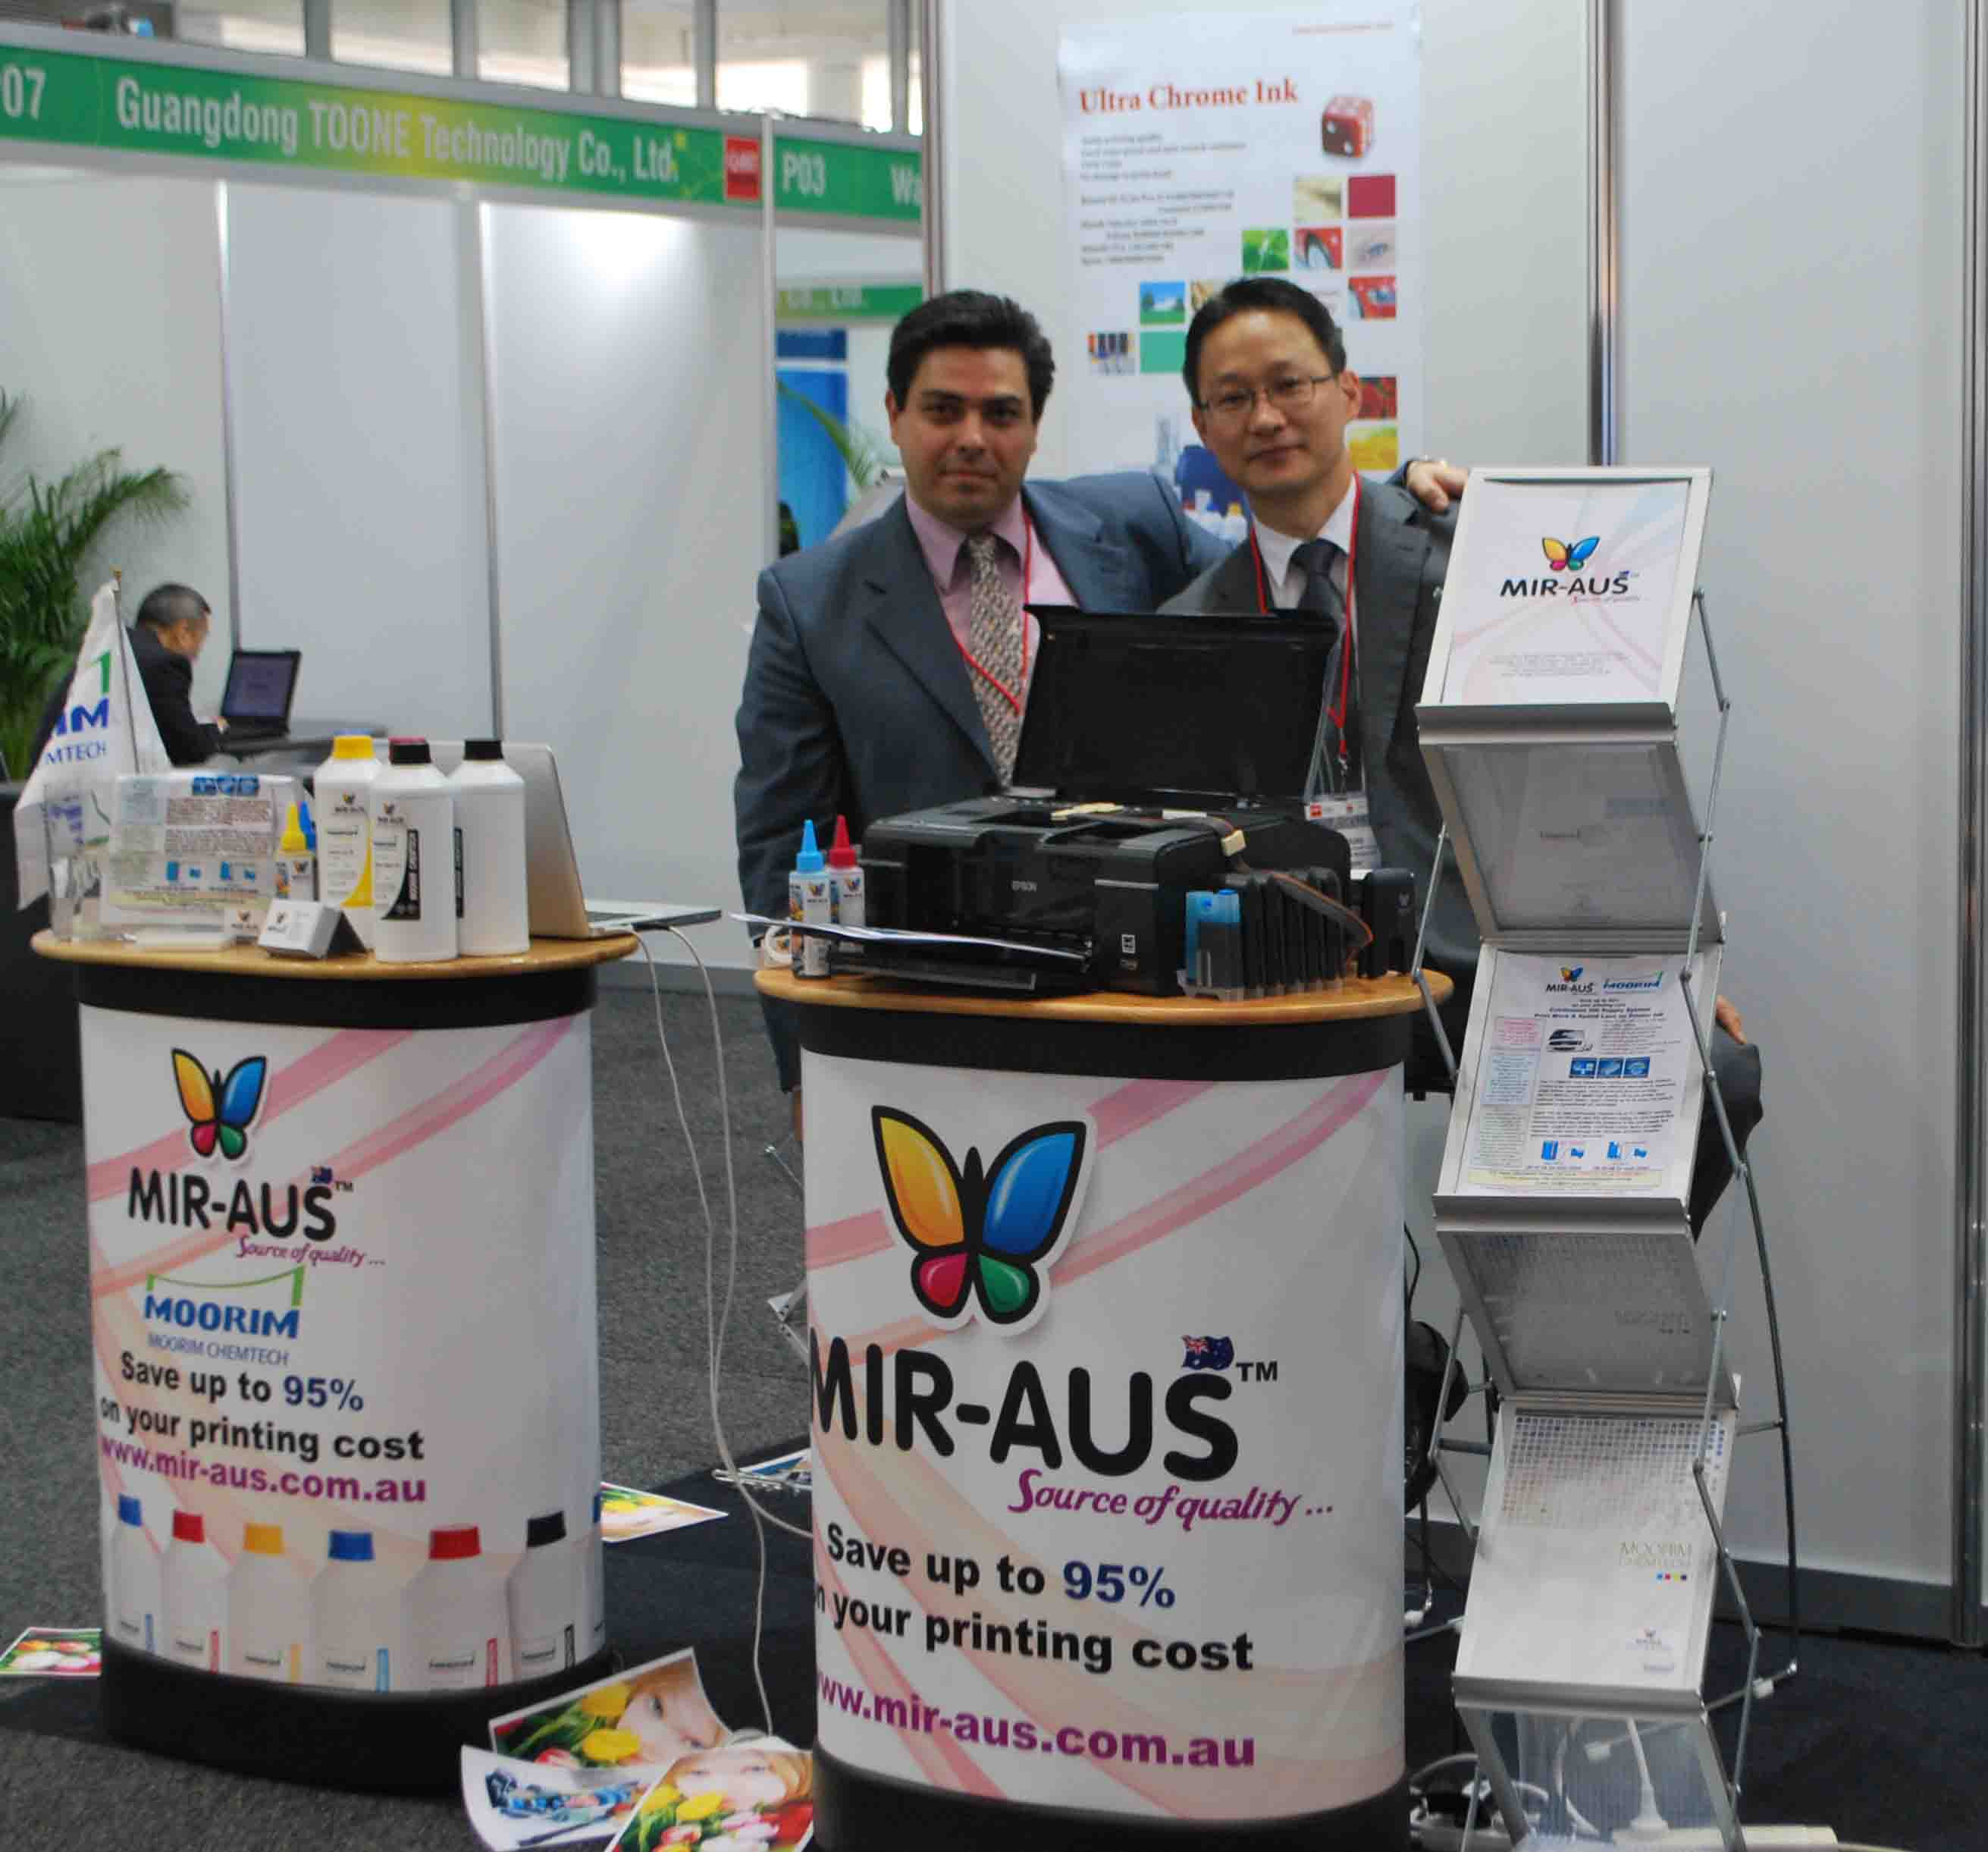 cebit 2011-mir-aus